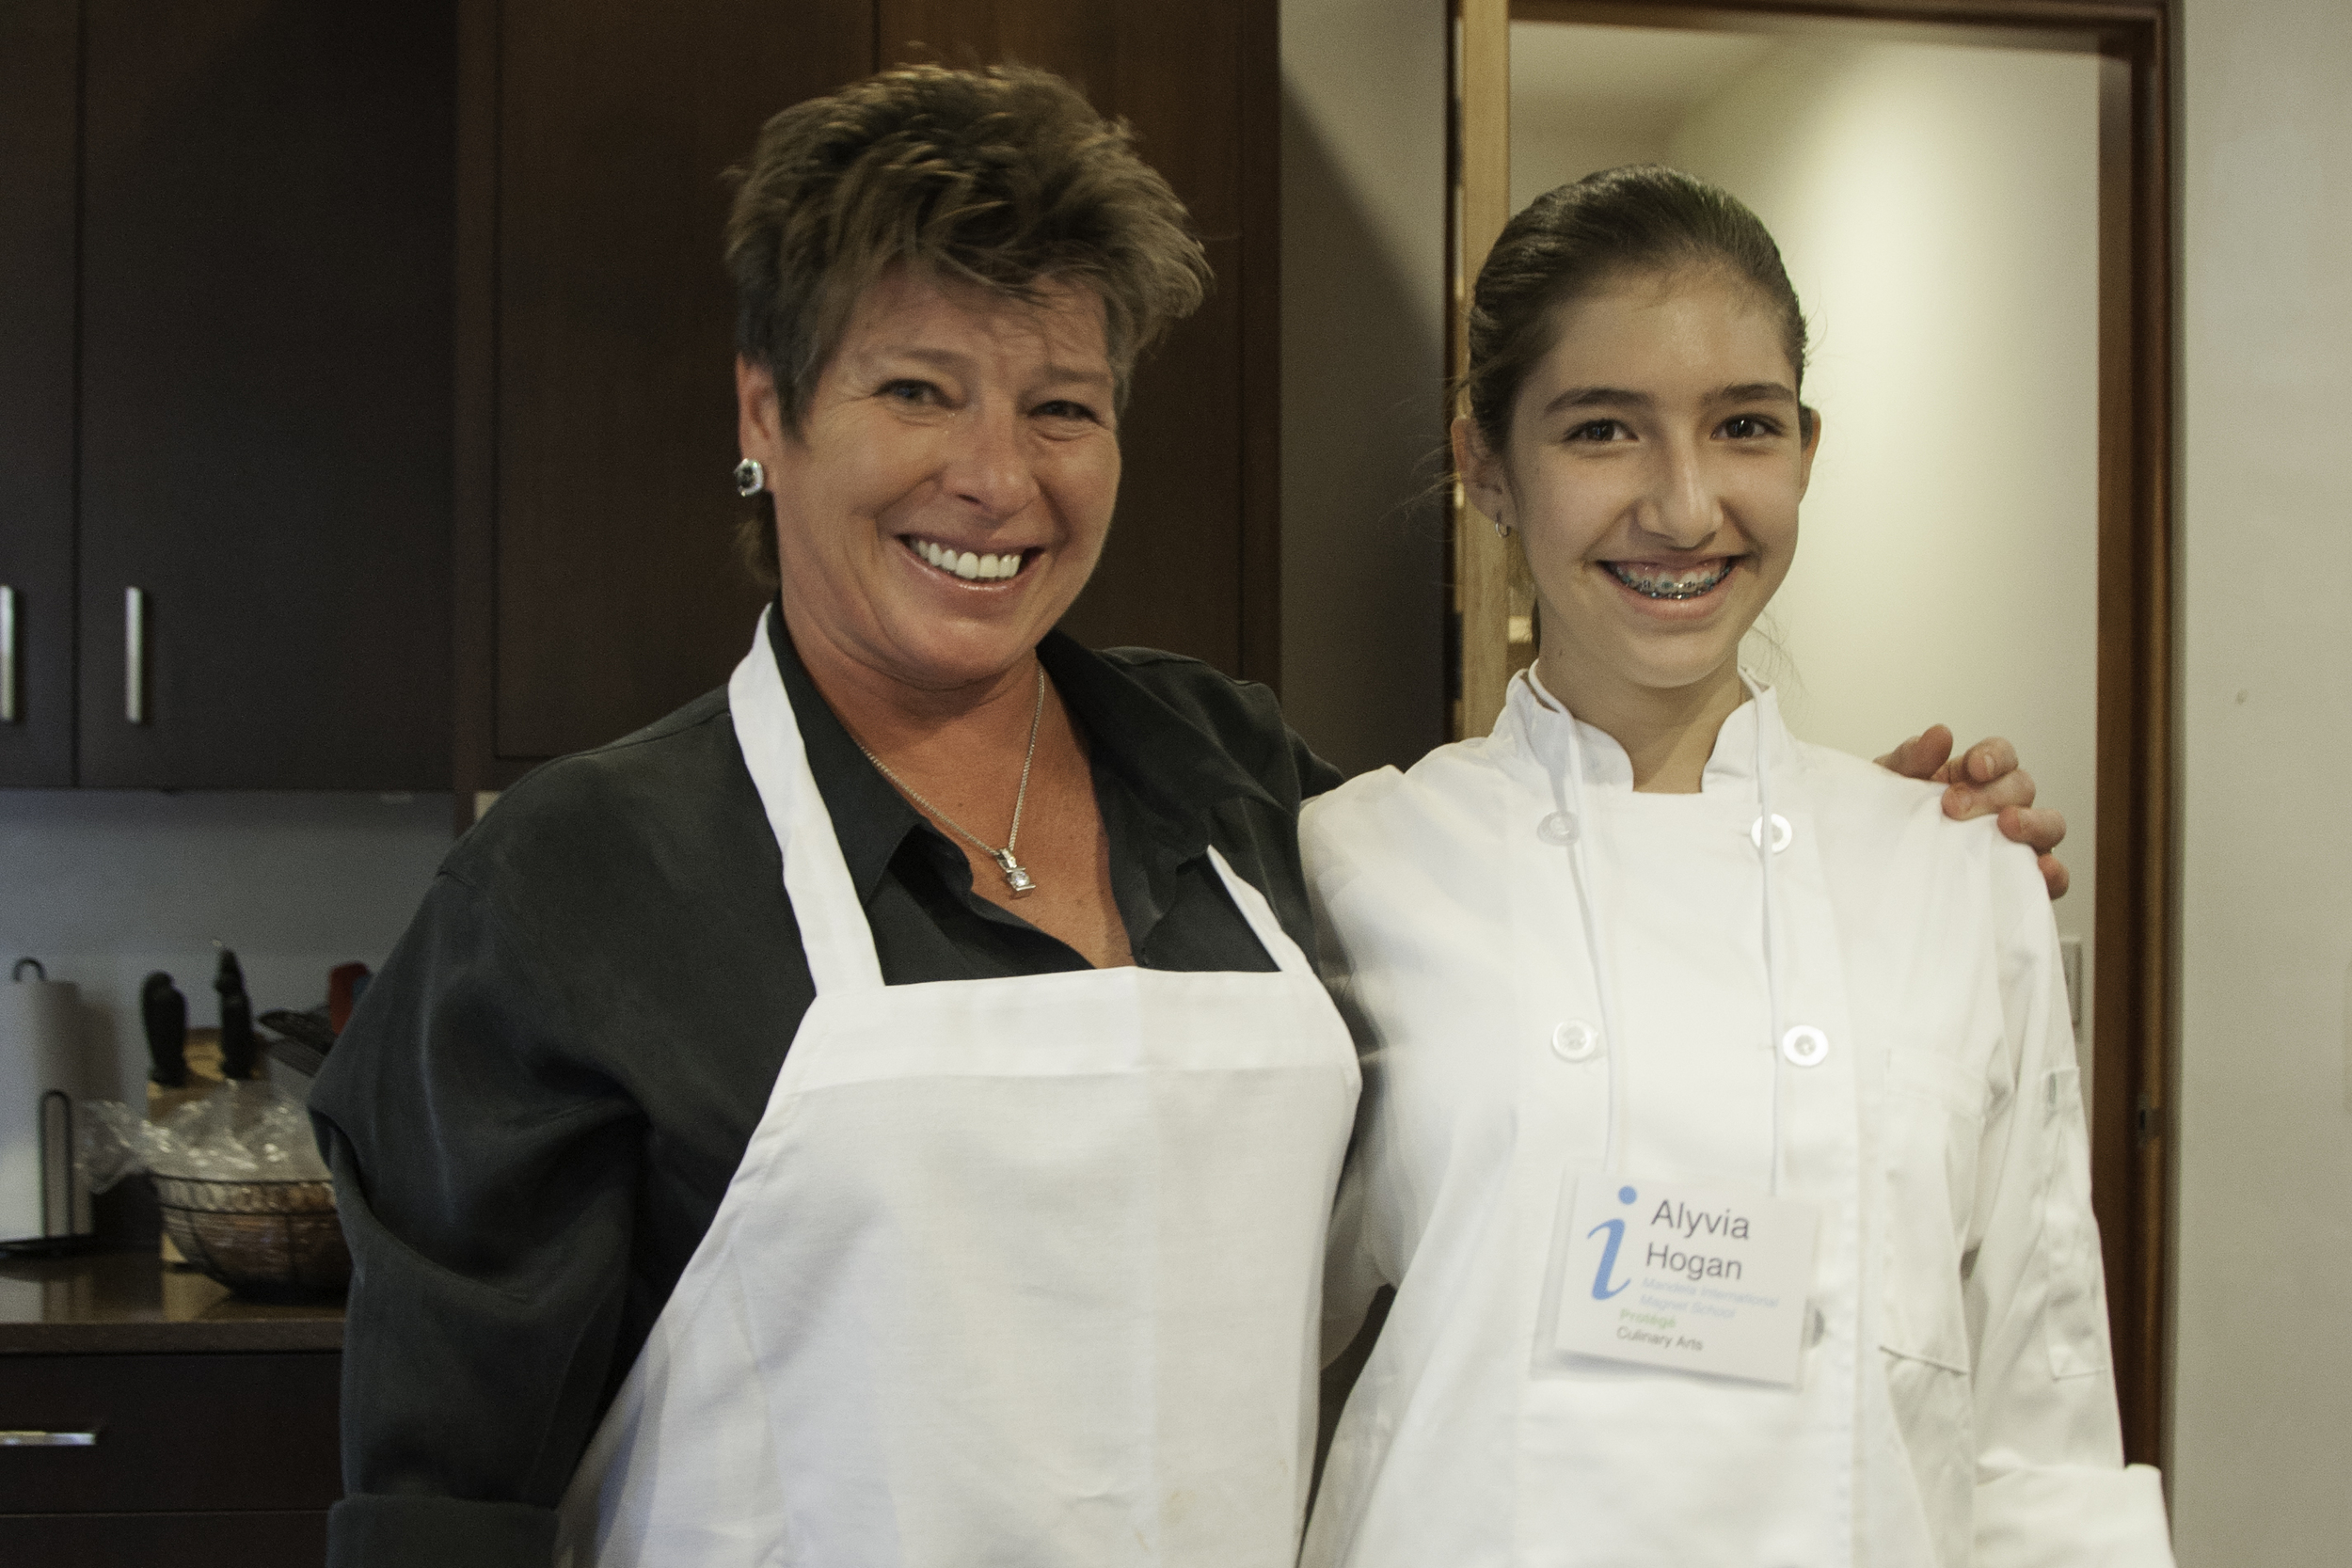 Catherine O'Brien -  Catherine O'Brien received her formal chef's training and earned her Culinary Degree with high honors from Johnson and Wales University in Rhode Island. Some of Catherine's 25 years of experience include Executive Chef of the University Club in Baltimore, Maryland, Chef Garde Manger at the Hyatt Regency Grand Cypress in Orlando, Florida and Corporate Catering Chef for the Smithsonian Institution in Washington, D.C.     Alyvia Hogan - Alyvia is a seventh grader at Mandela International Magnet School.